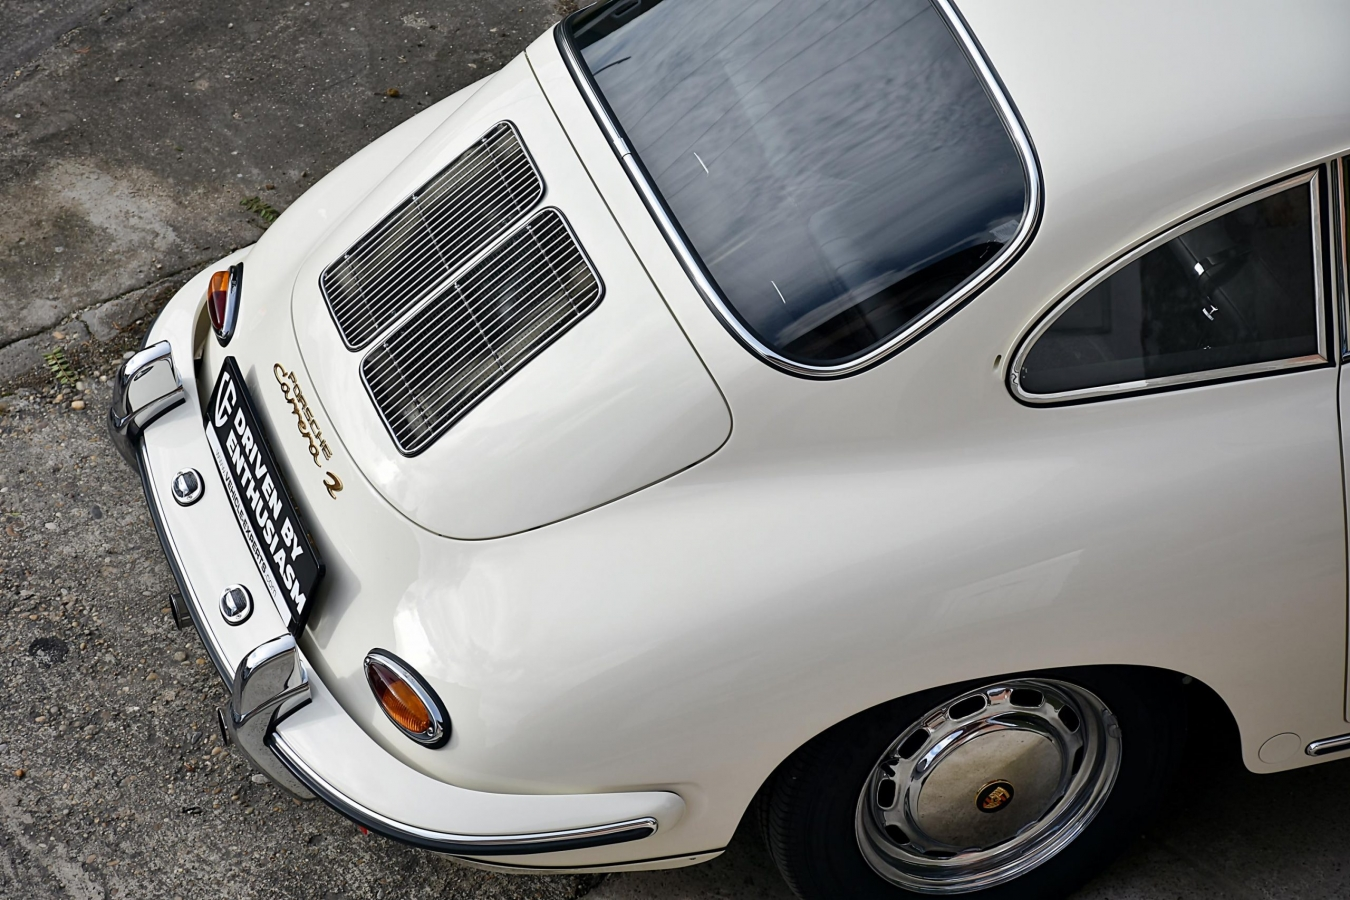 Porsche 356 C 2000 GS Carrera 2 Coupè 46